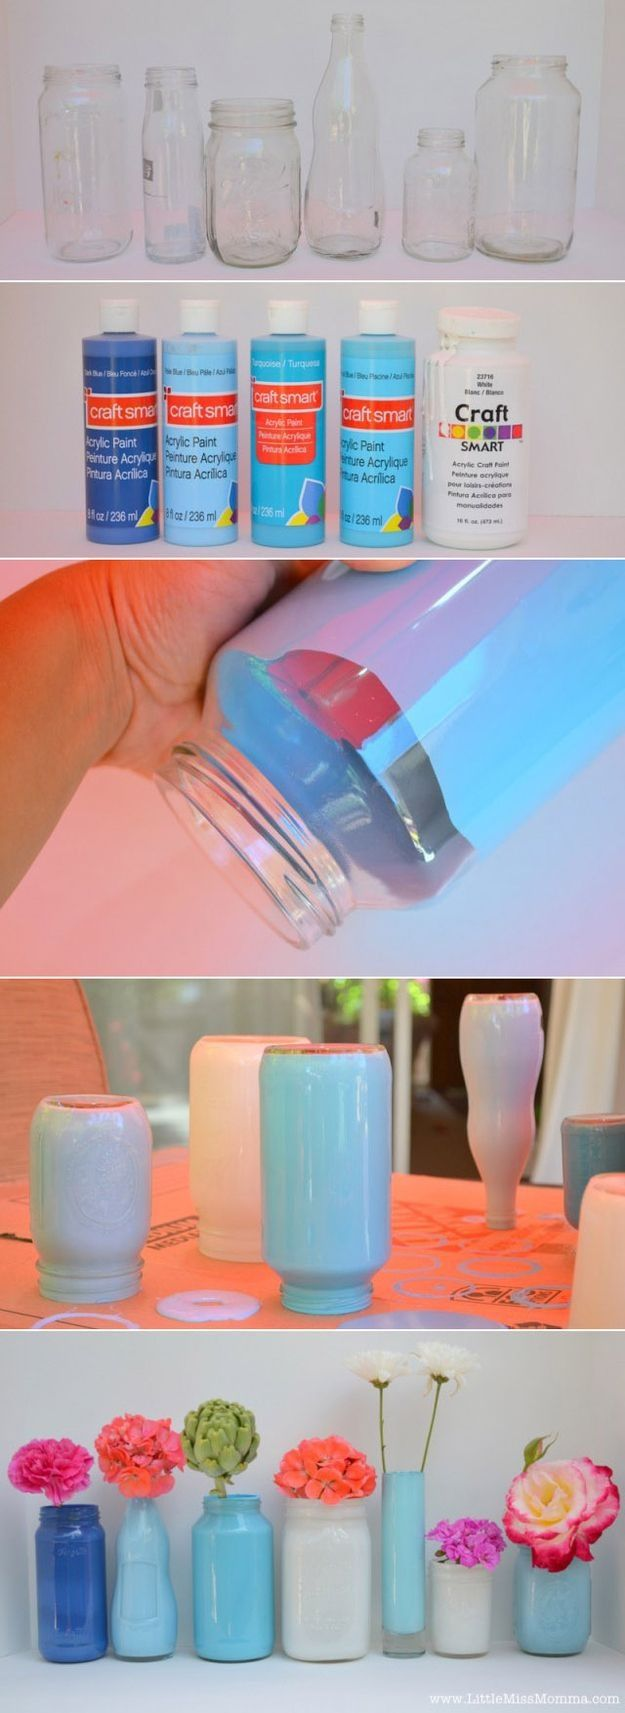 Paint Mason Jar to make vase!